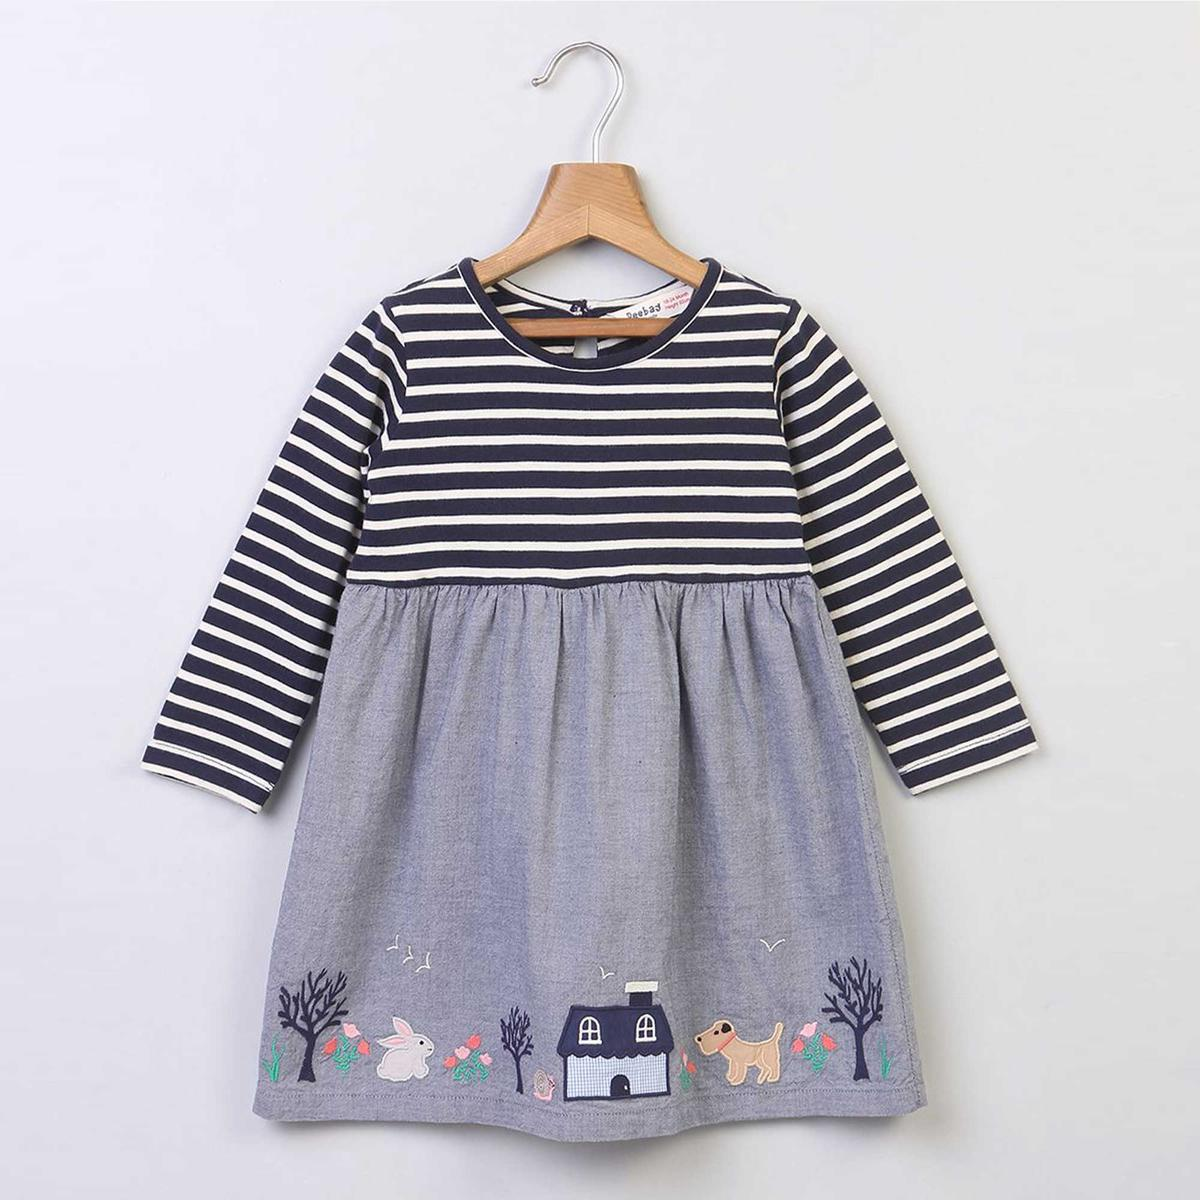 Beebay Chambray & Jersey Embroidered Dress For Kids